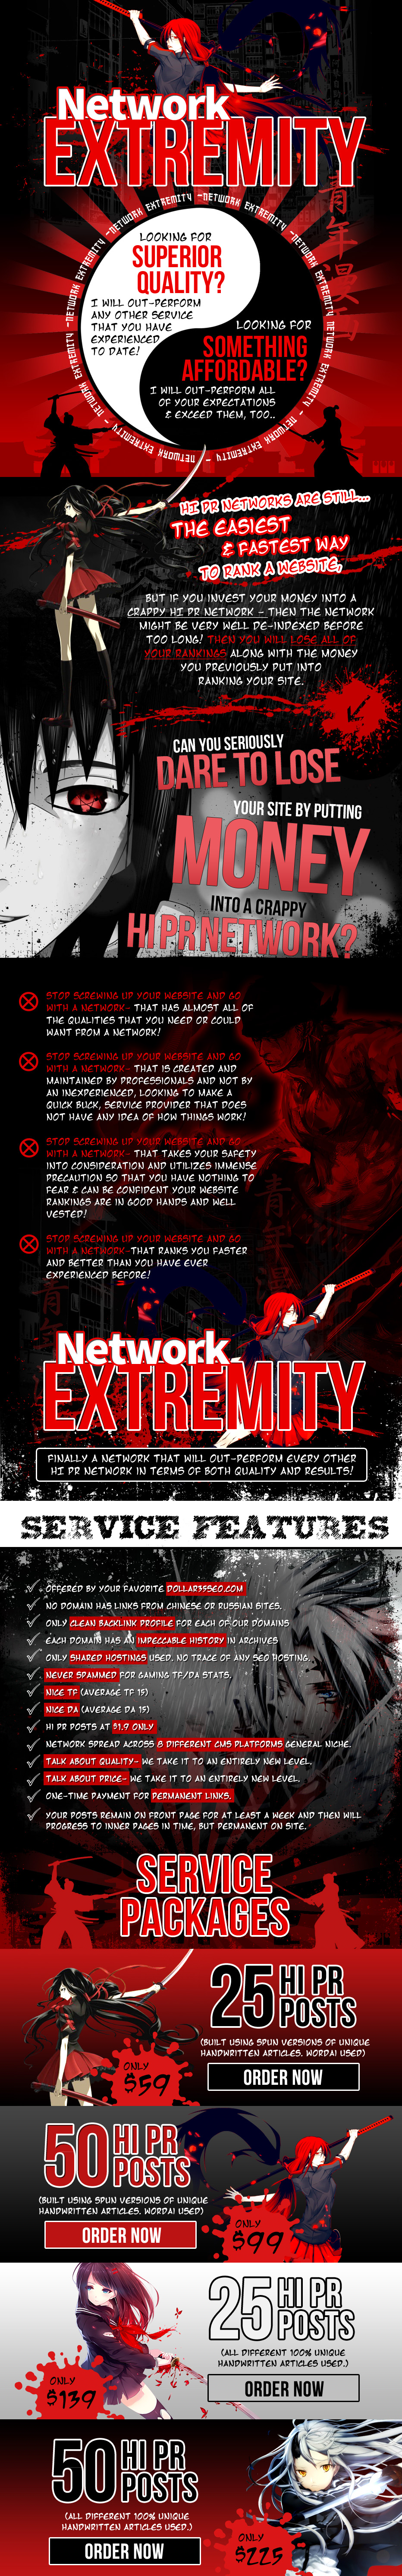 Network Extremity Thread Design New PSD